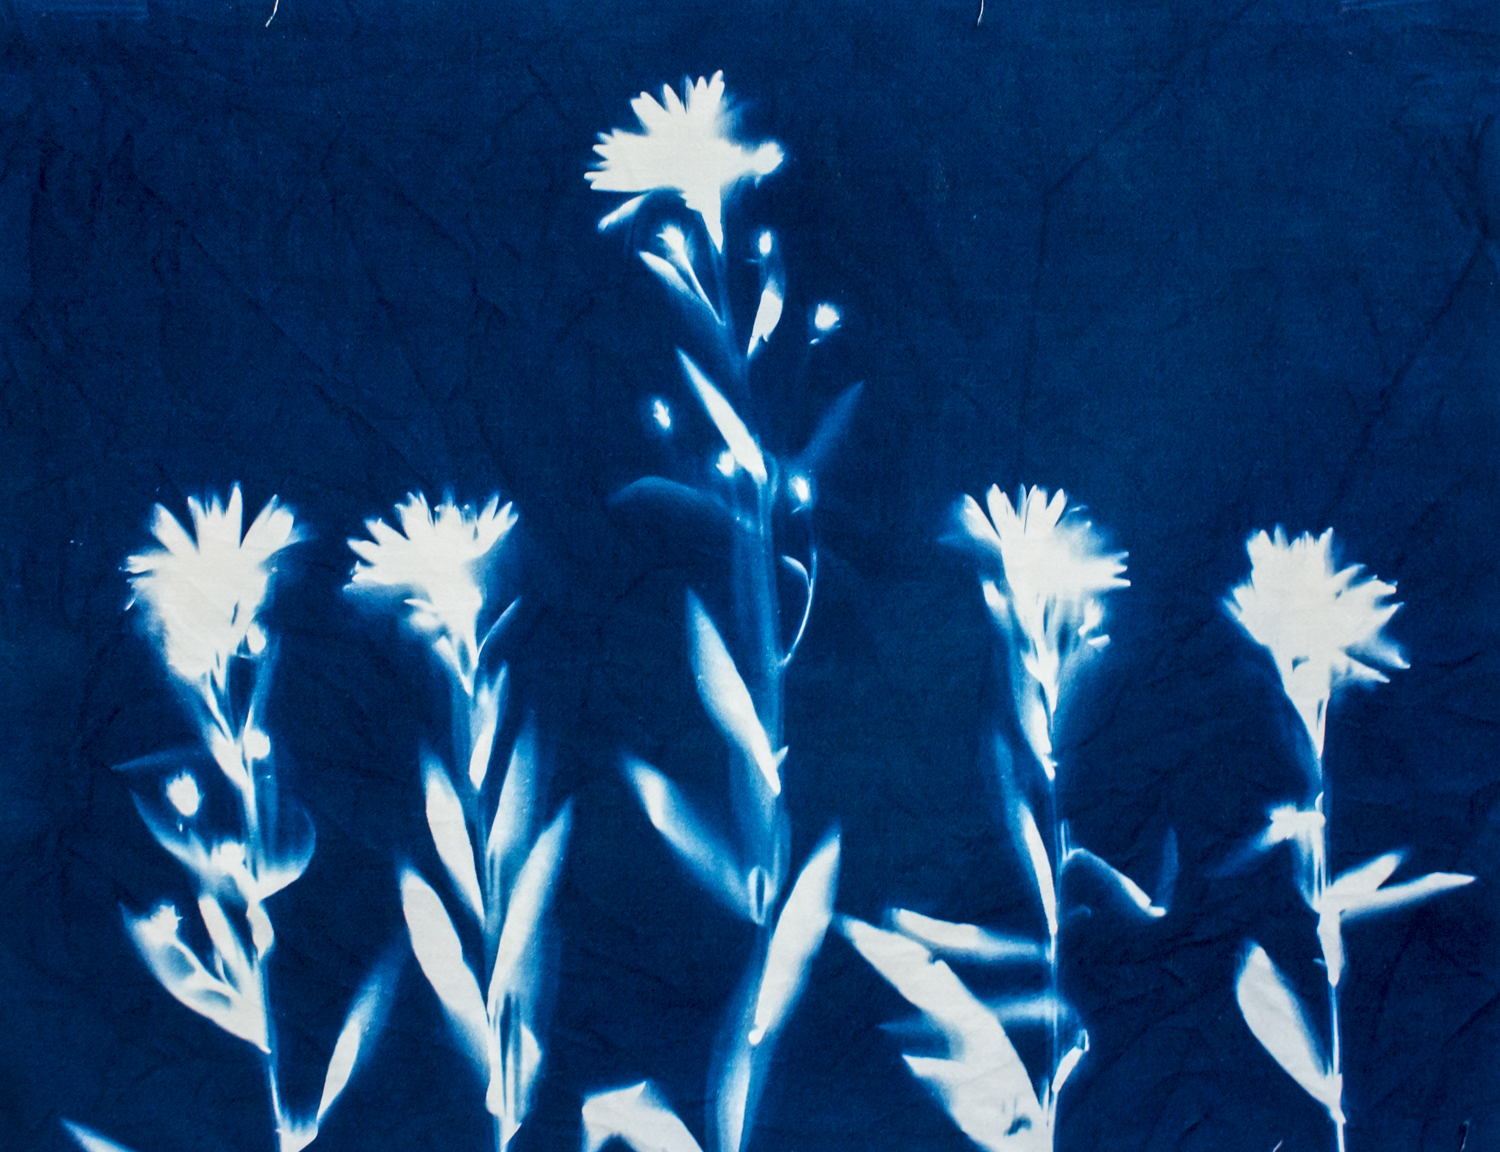 Detail of panel -- Aster